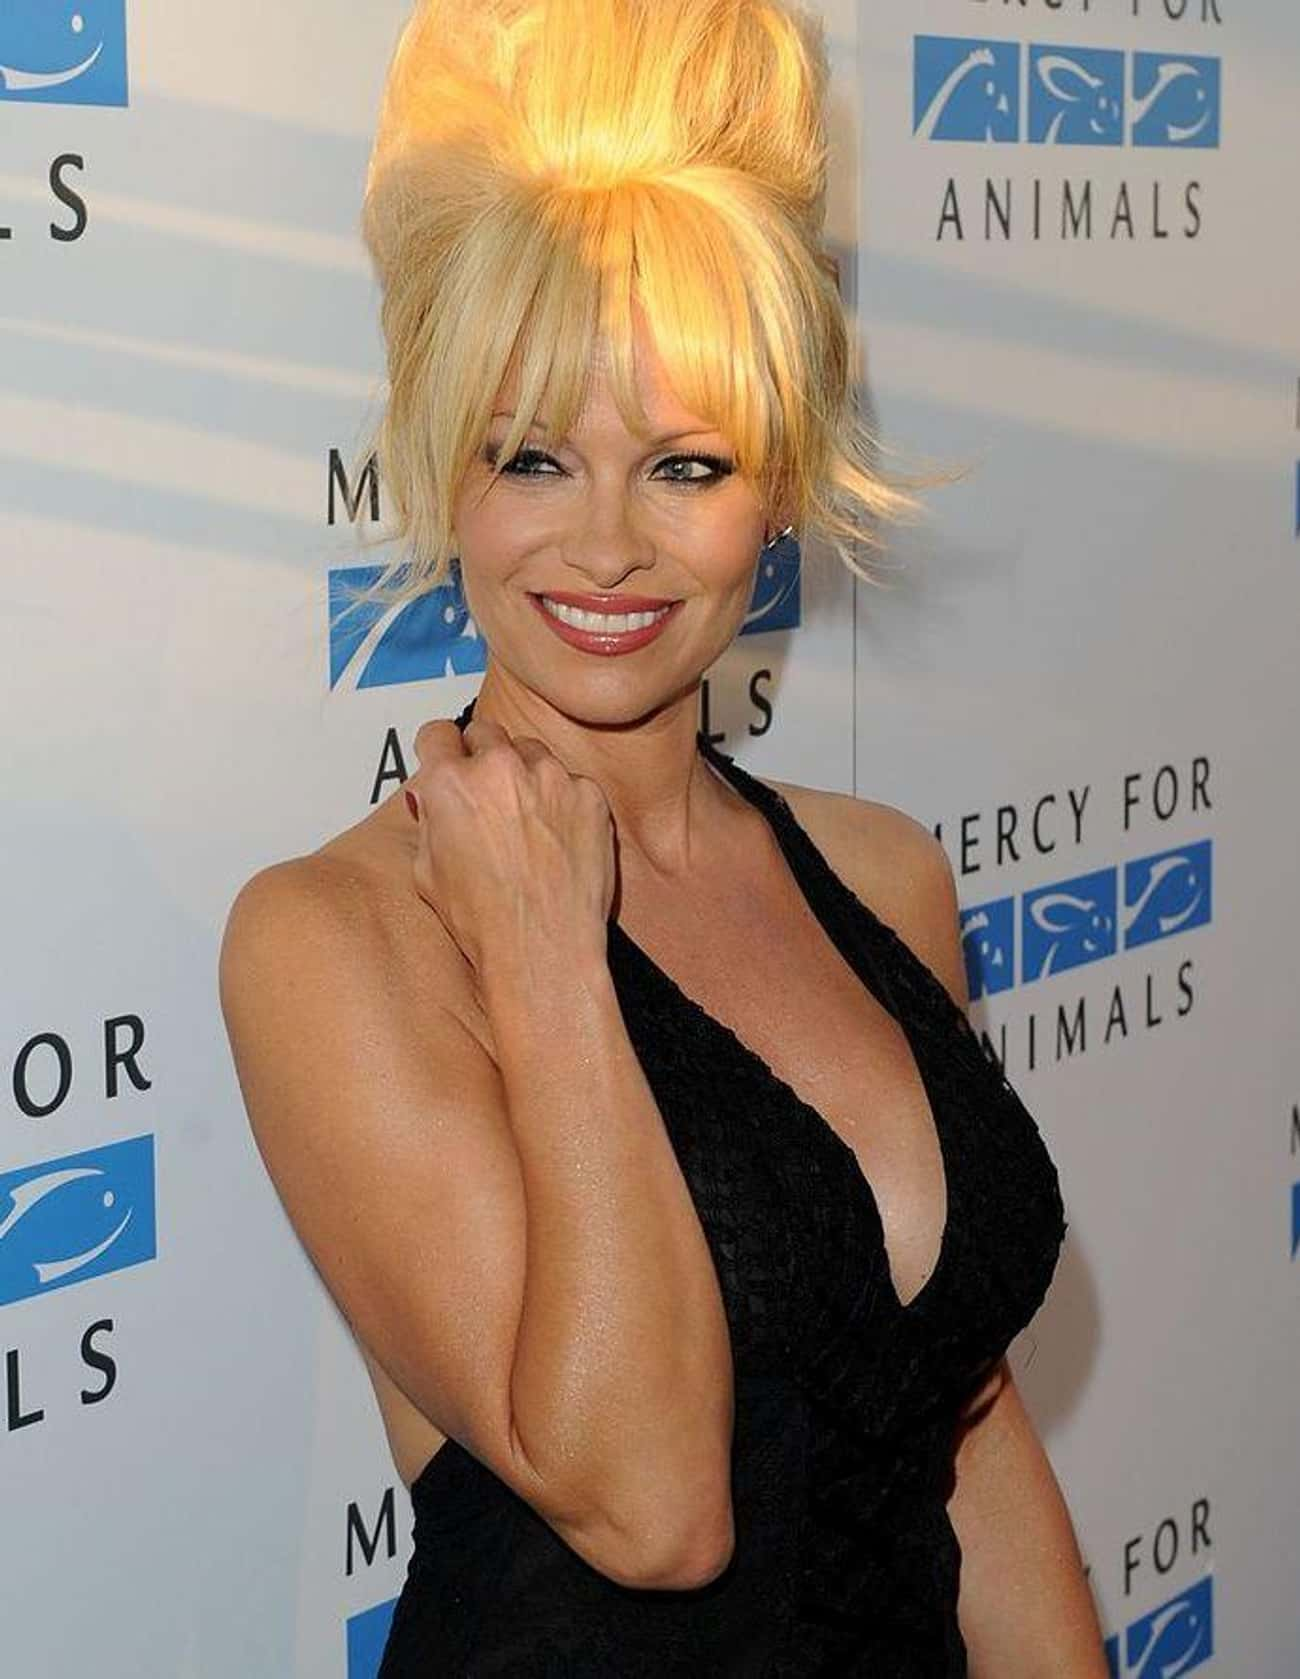 Pamela Anderson Appeared On A Jumbotron At A Football Game